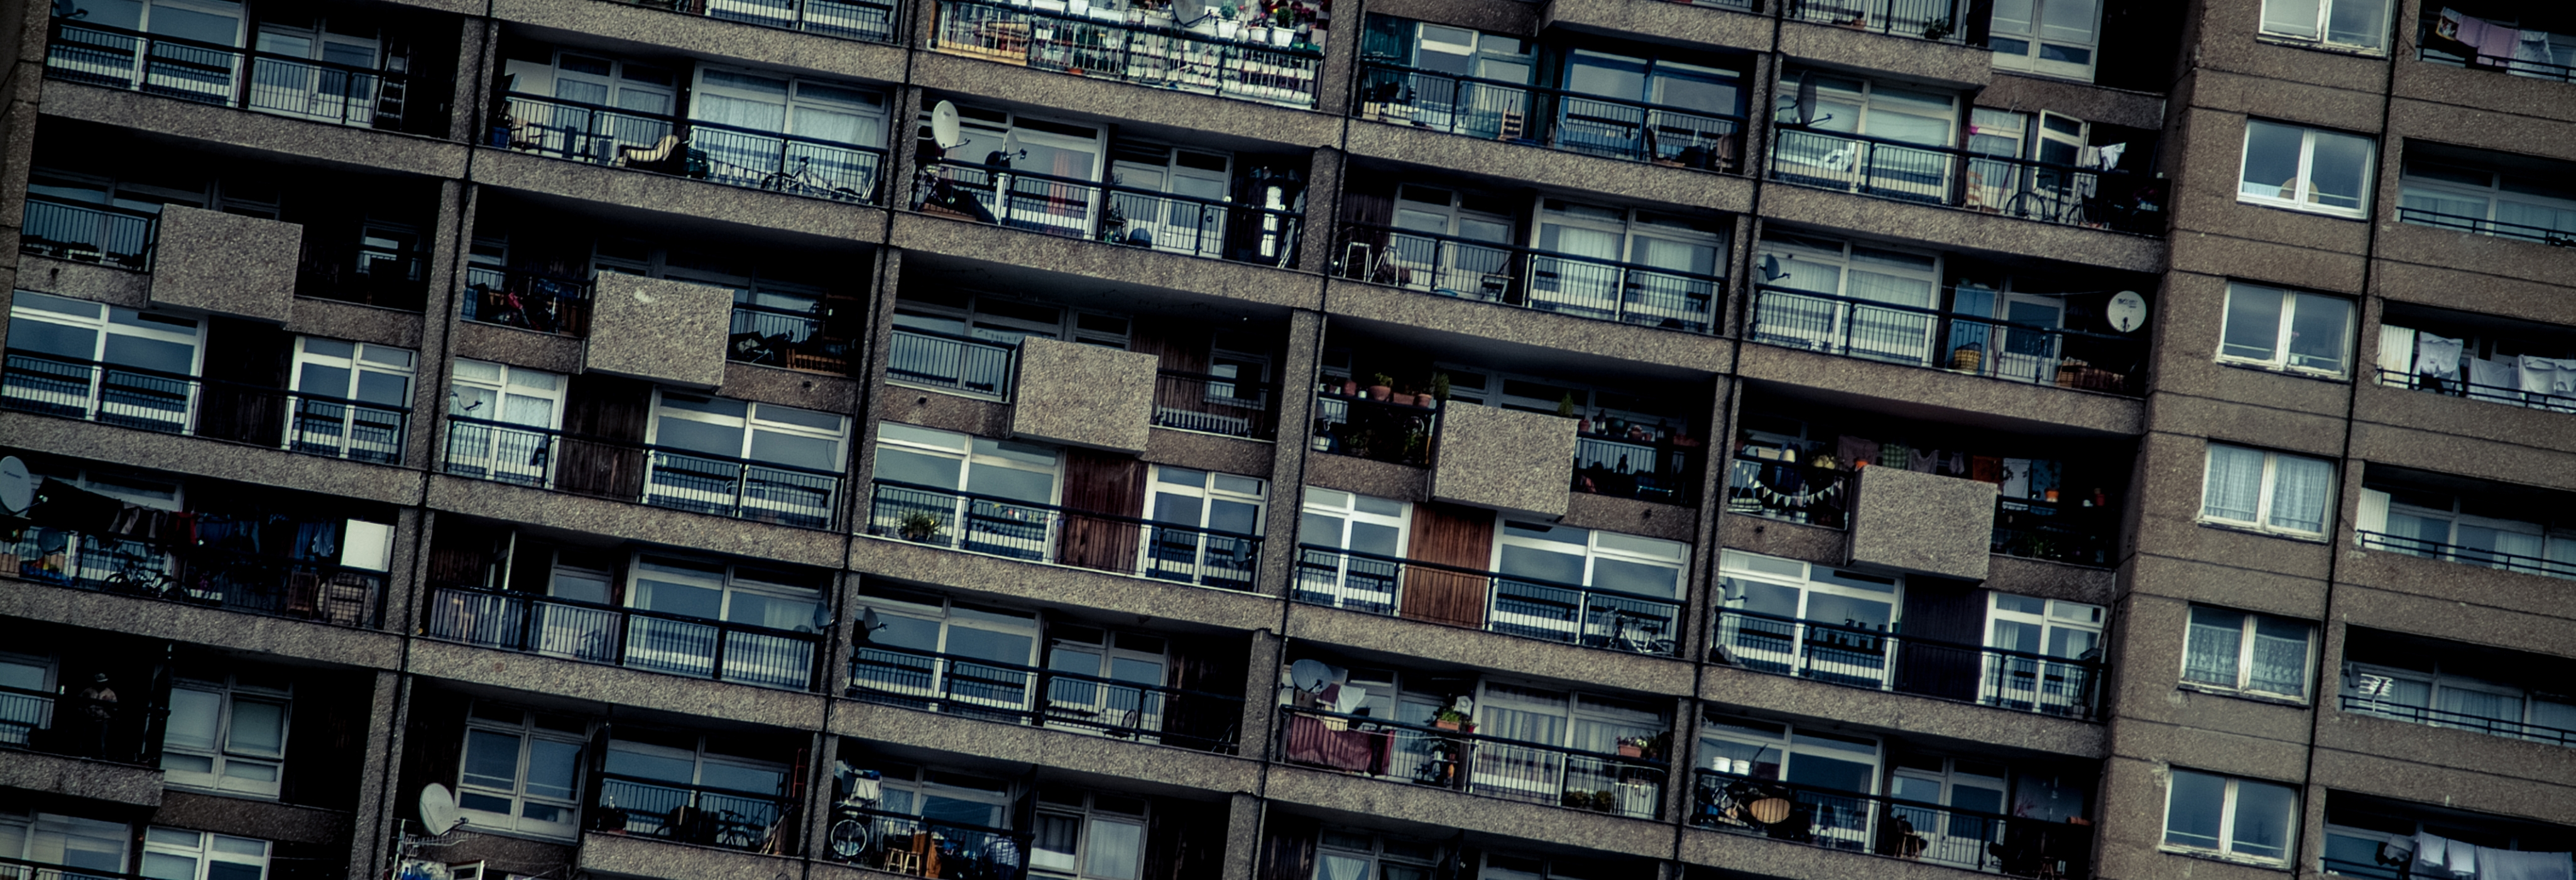 densely populated flats with balconies